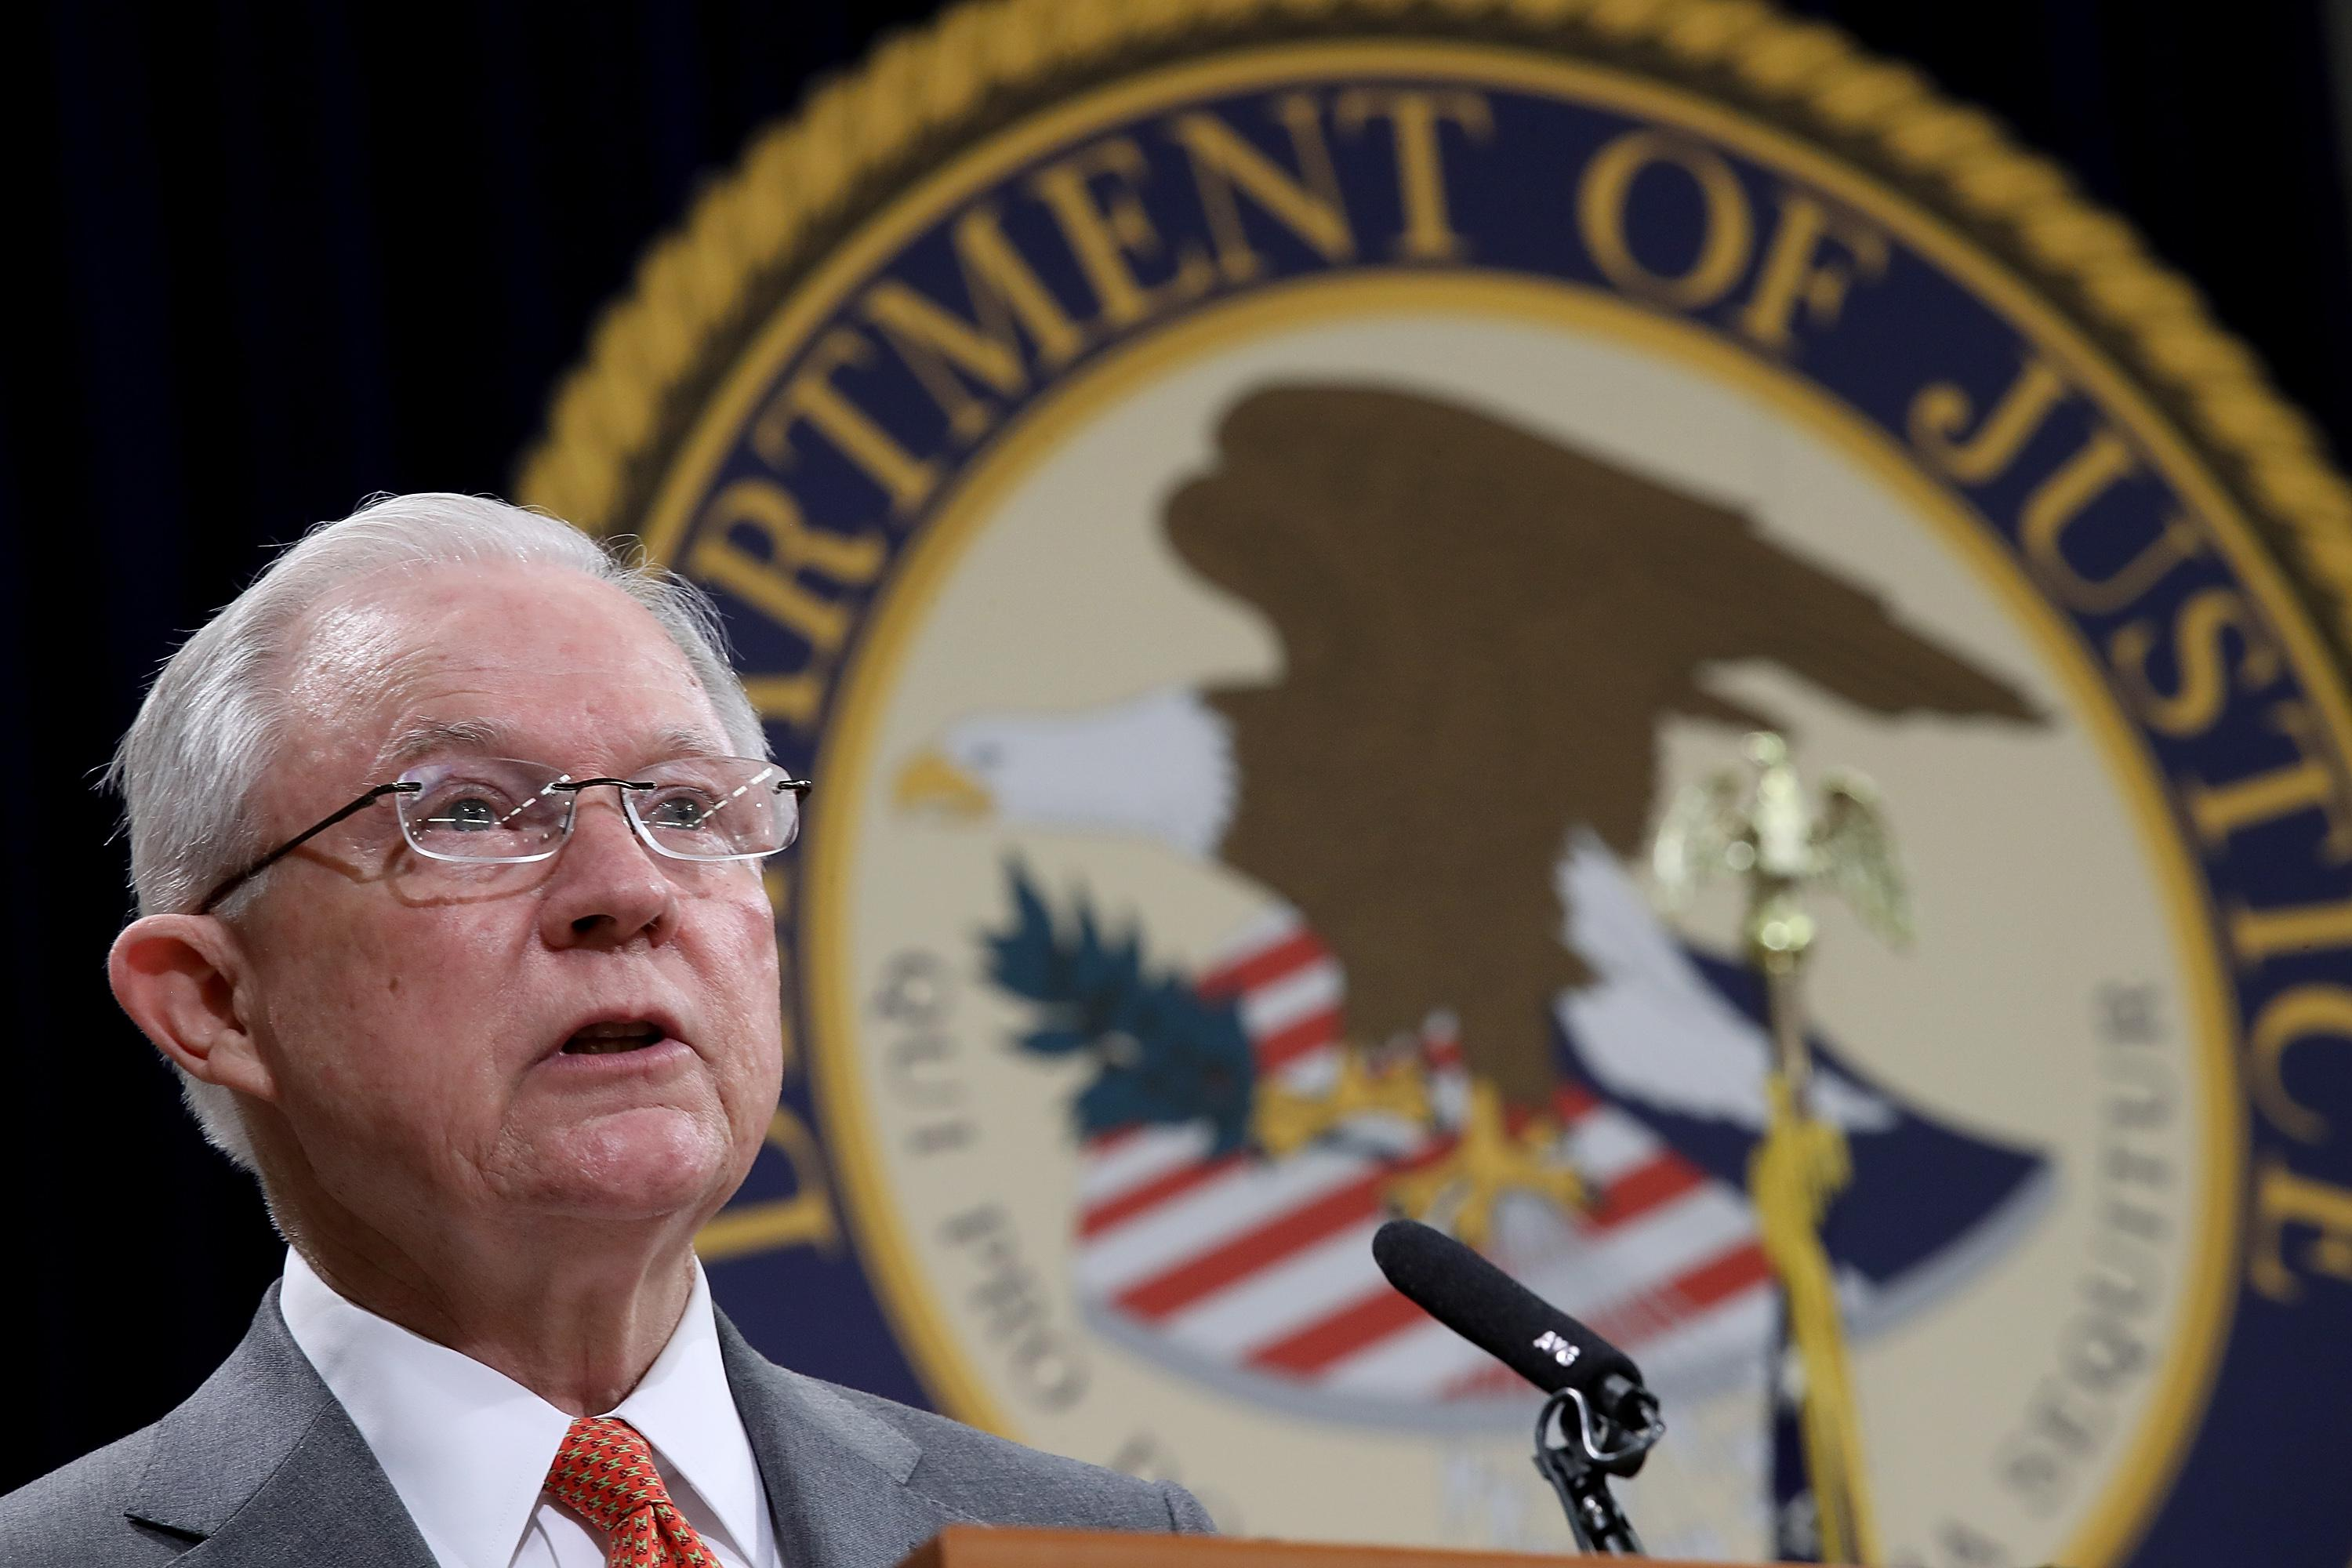 Attorney General Jeff Sessions speaks at podium in front of the Department of Justice seal.